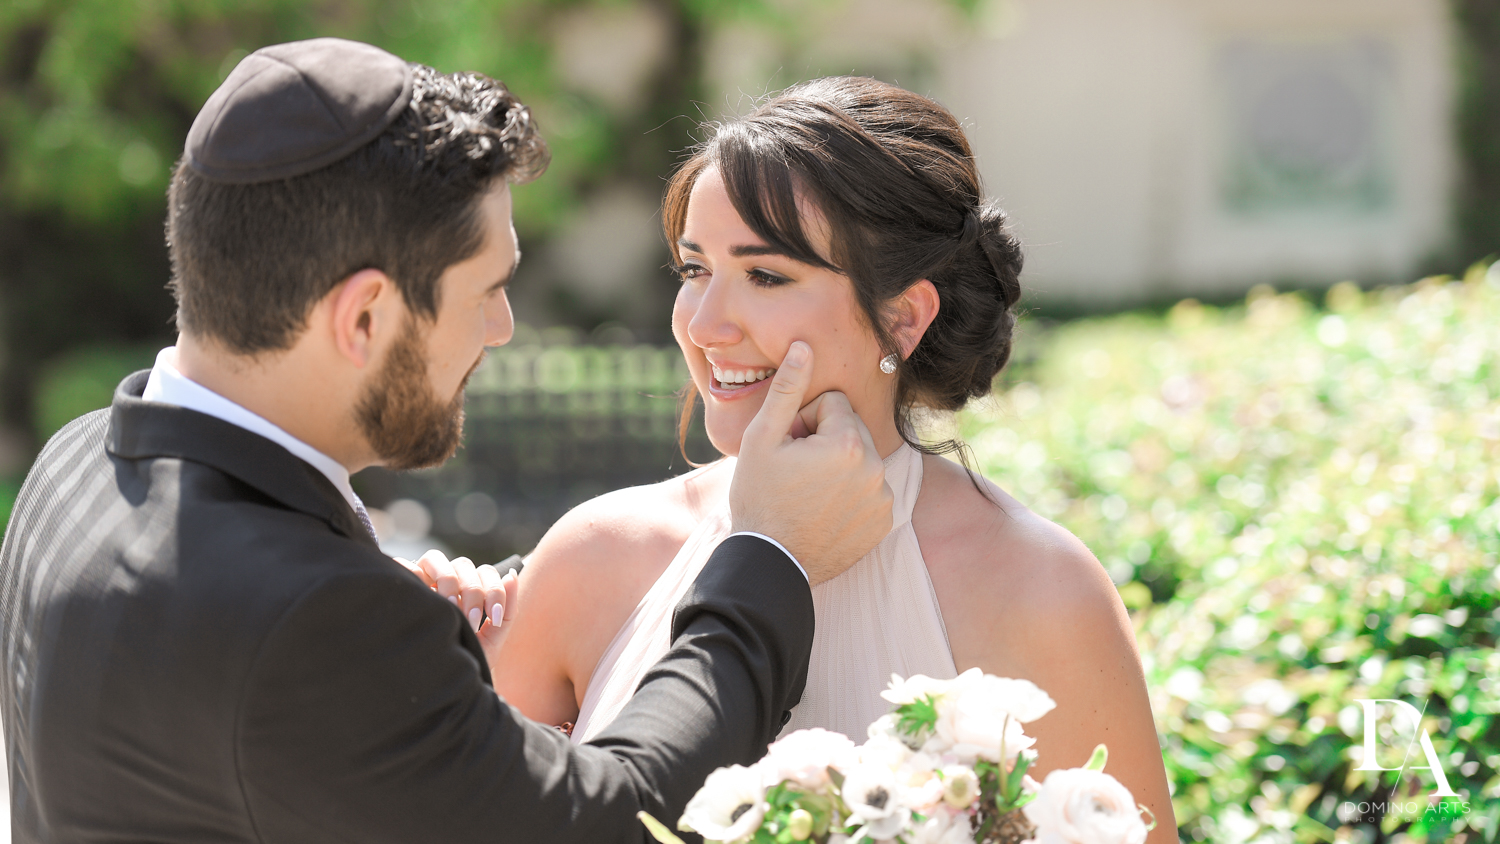 siblings at Vintage Garden Wedding at Flagler Museum Palm Beach by Domino Arts Photography